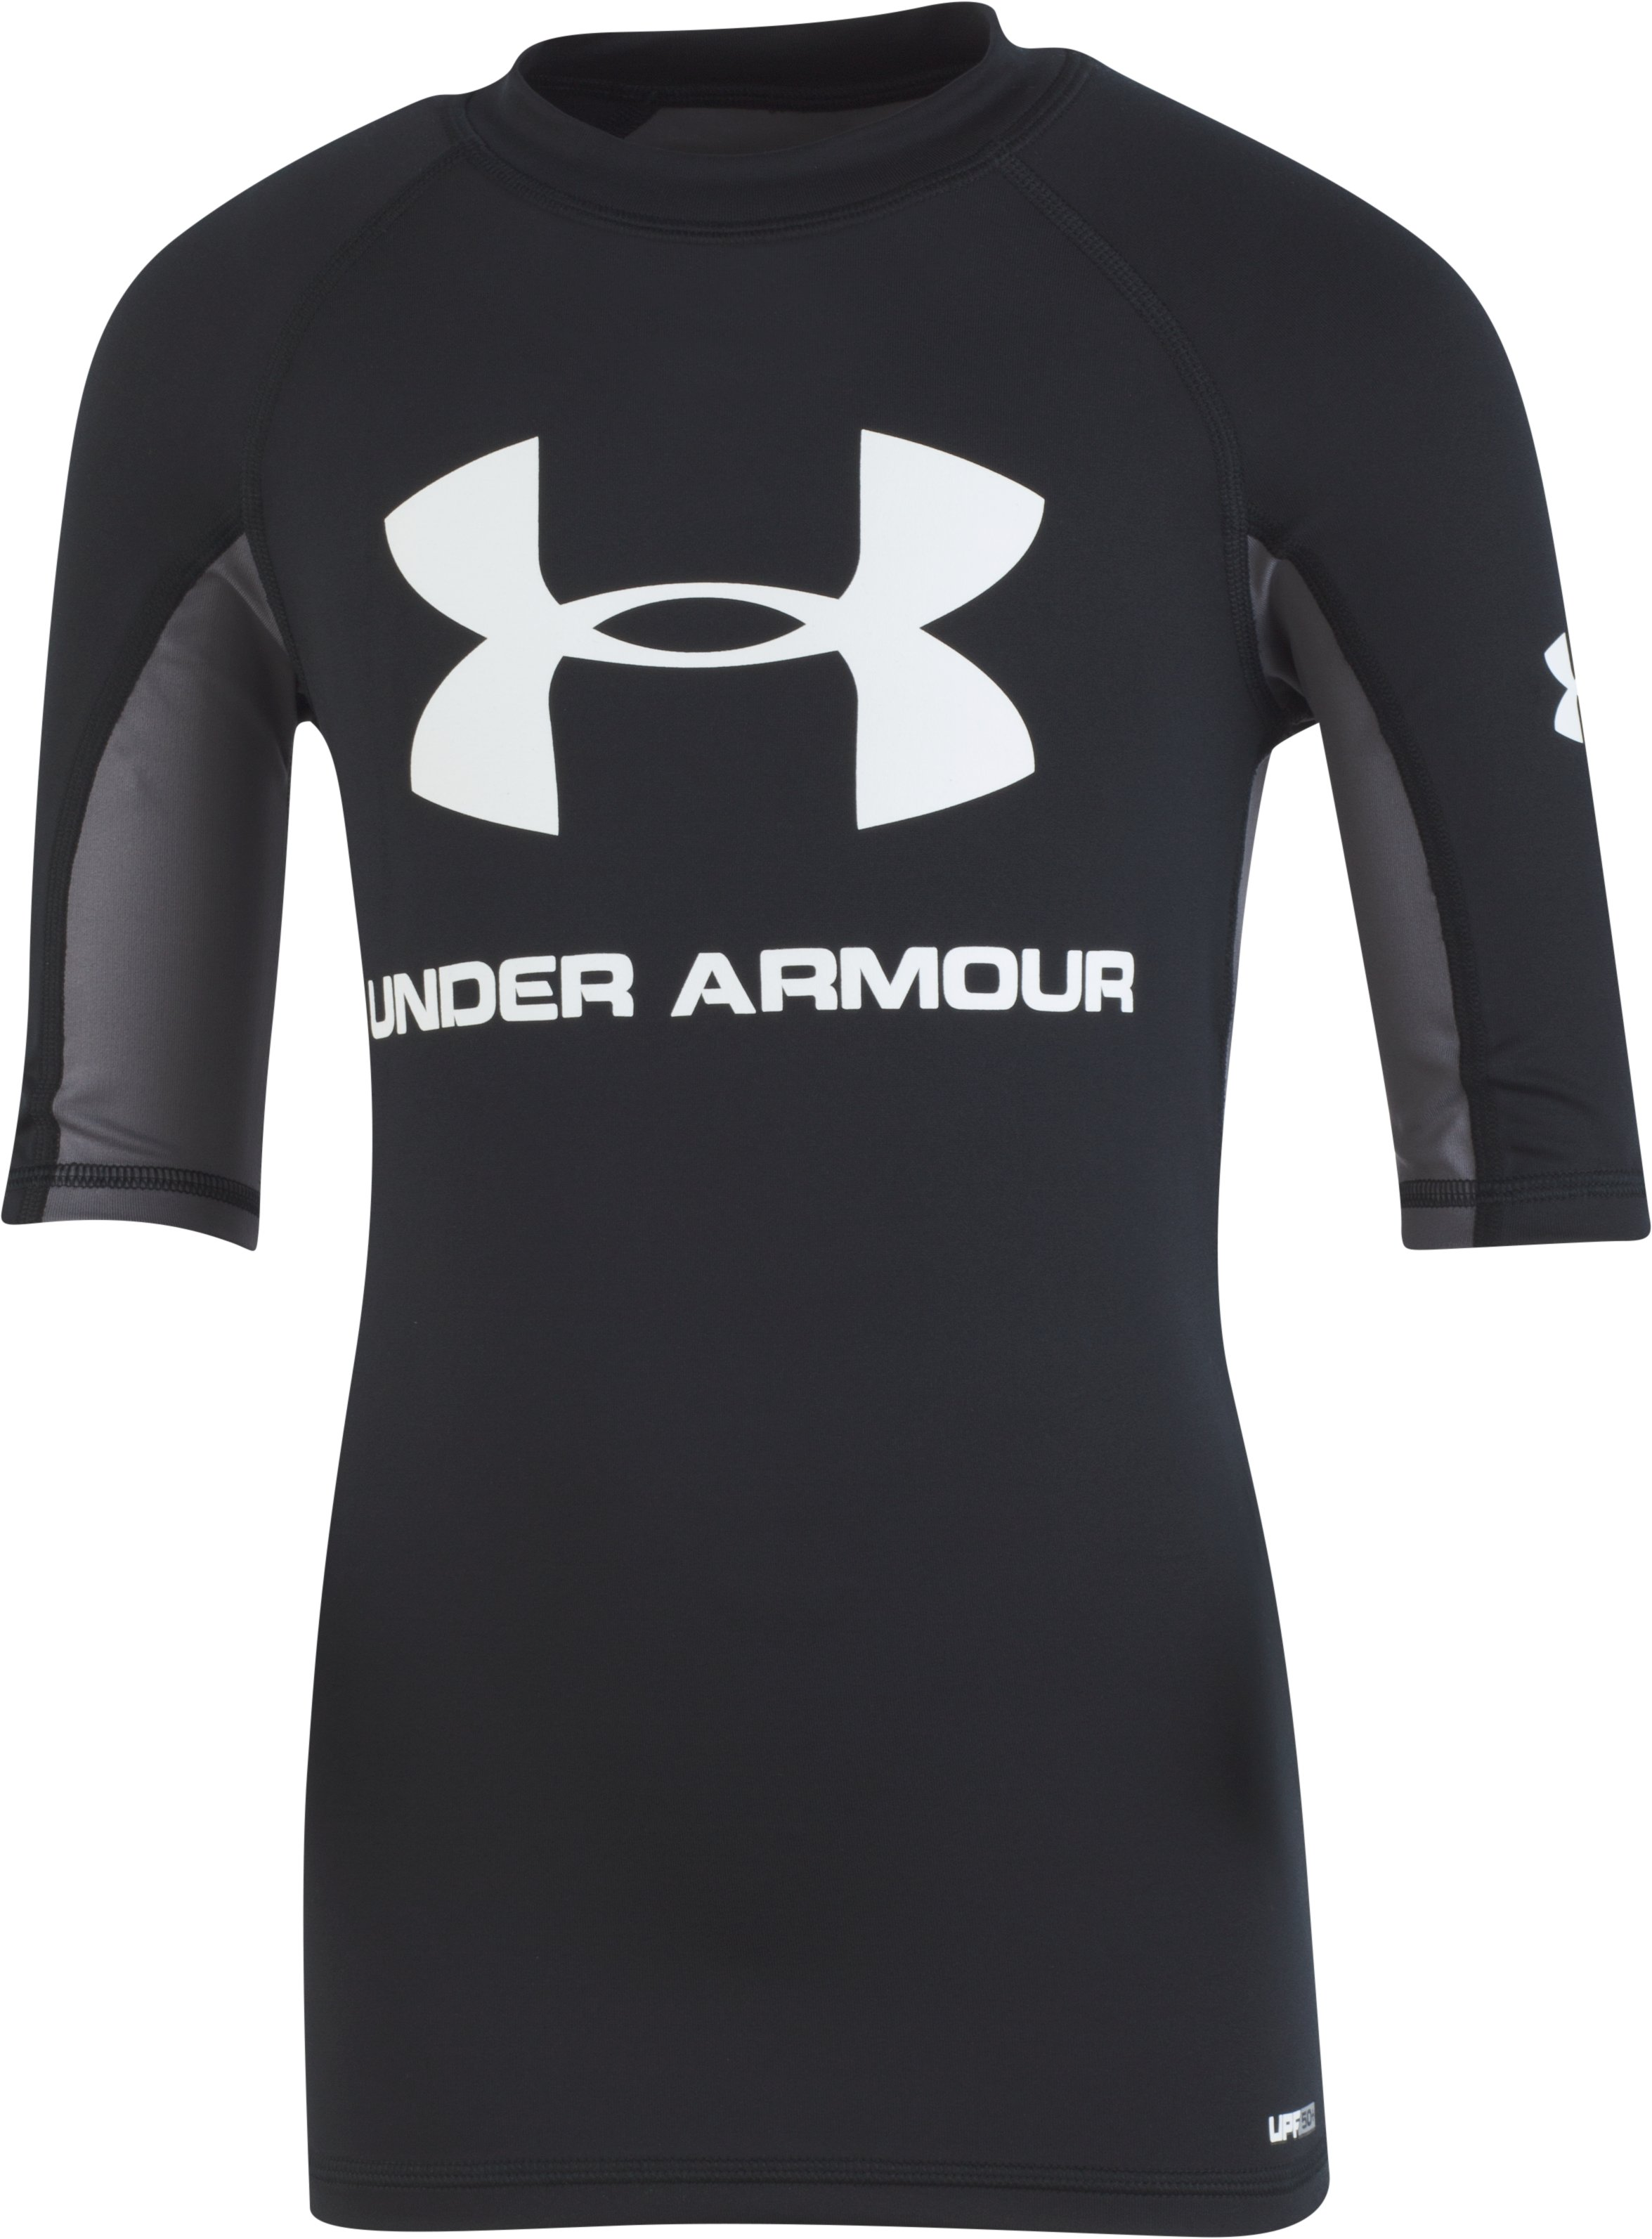 Boys' UA Compression Short Sleeve Rashguard Shirt, Black , Laydown